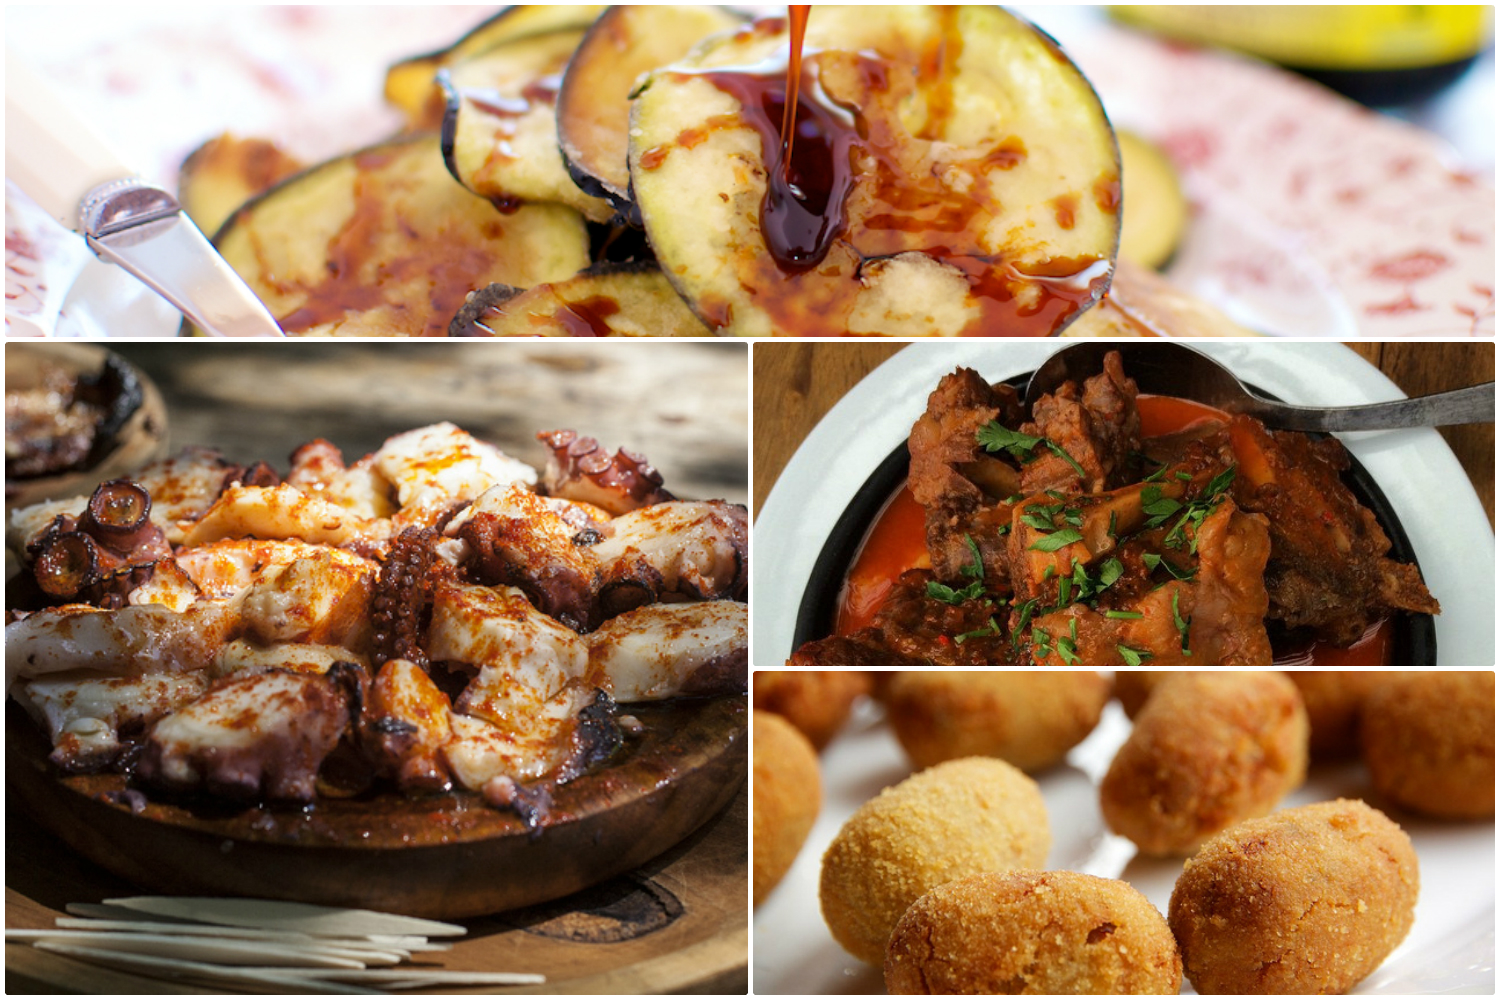 Our favourite Spanish dishes